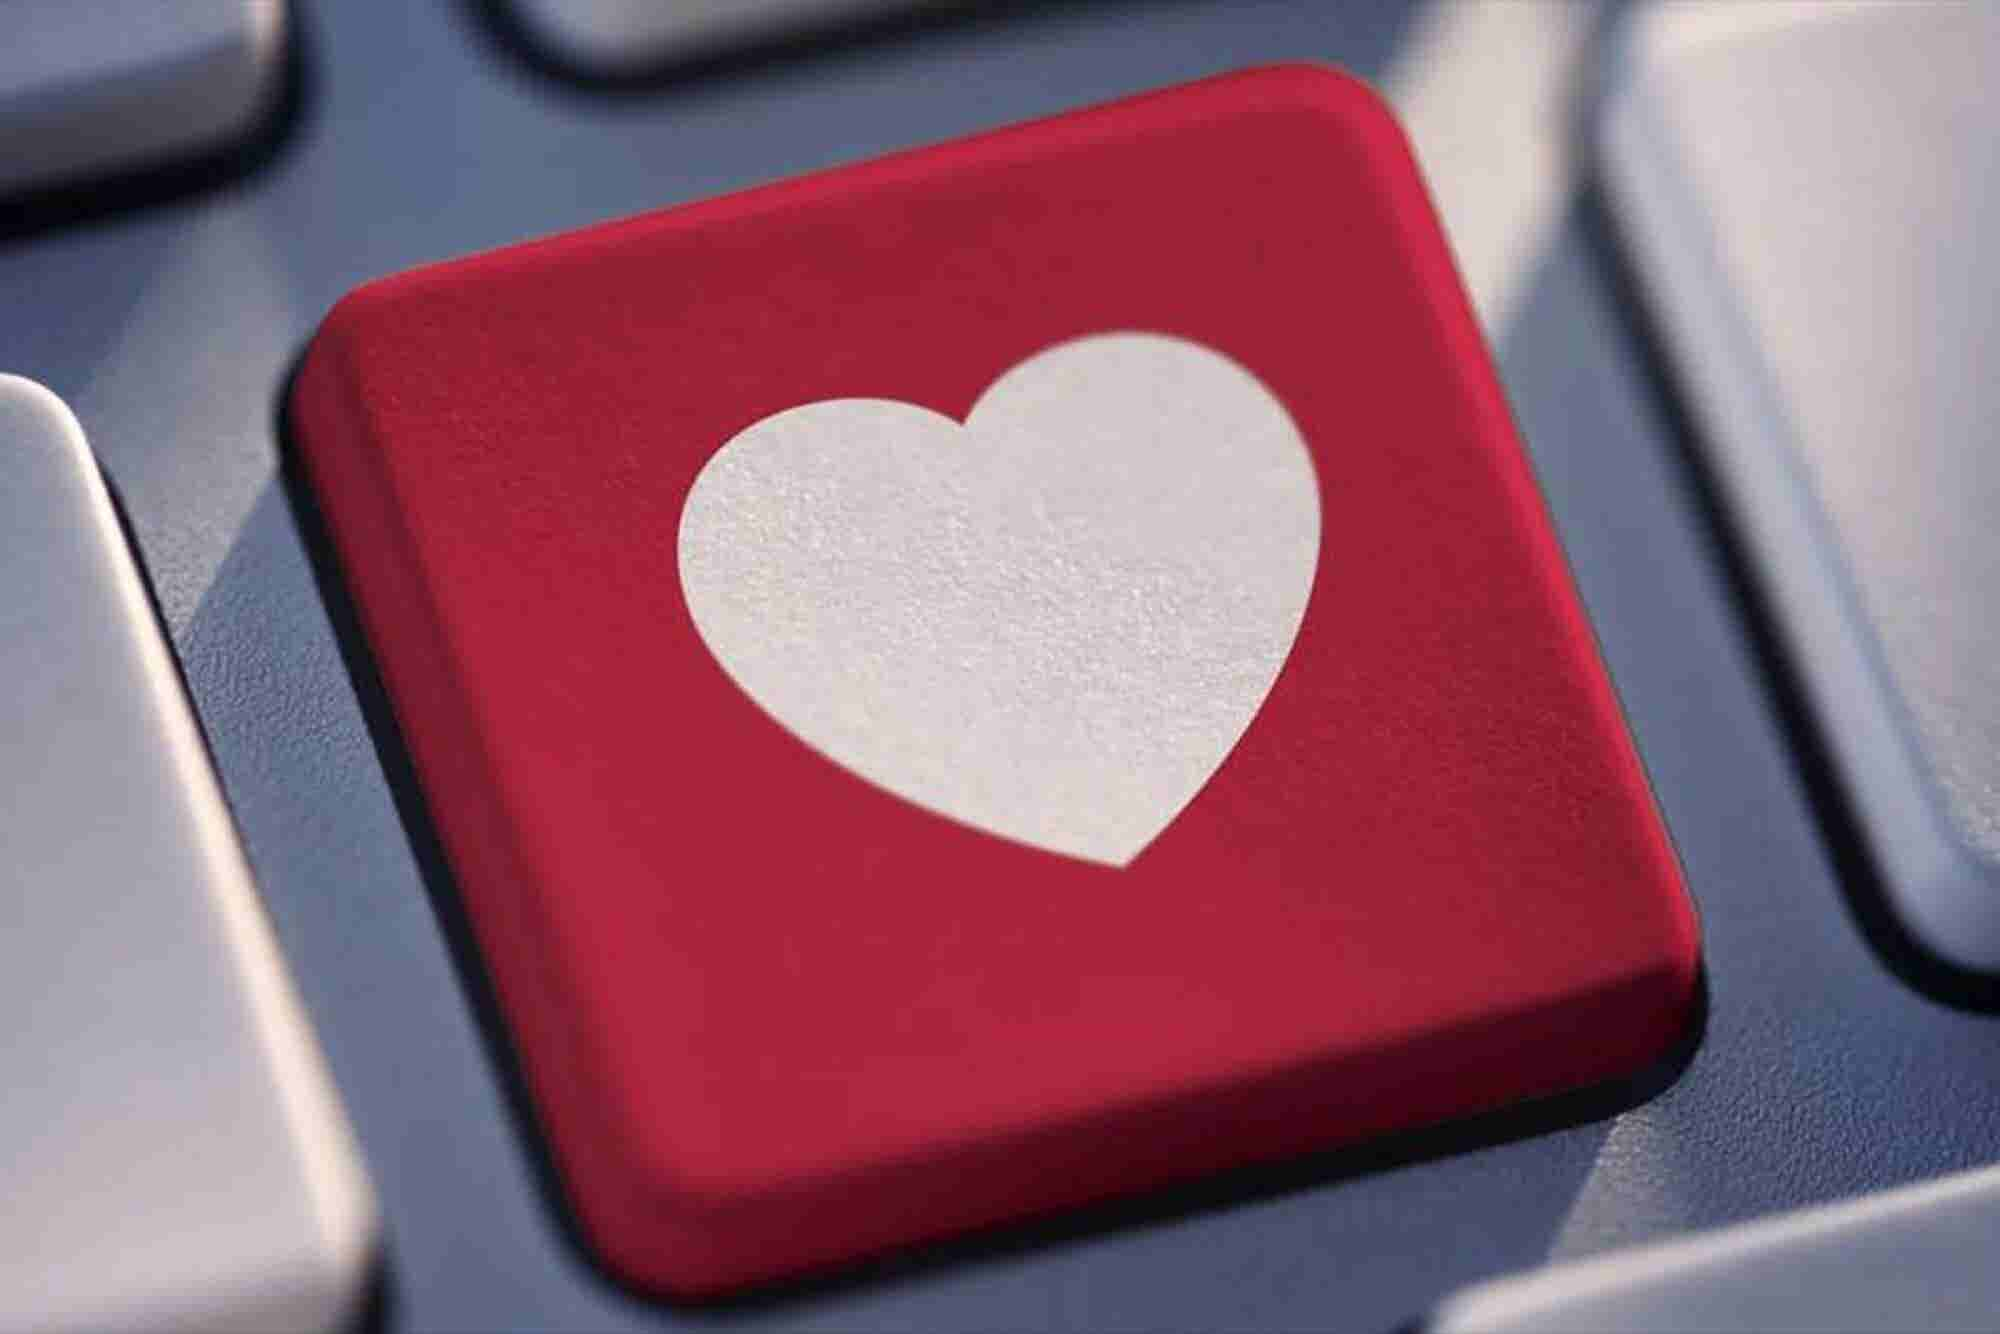 Facebook Jumps Into Online Dating